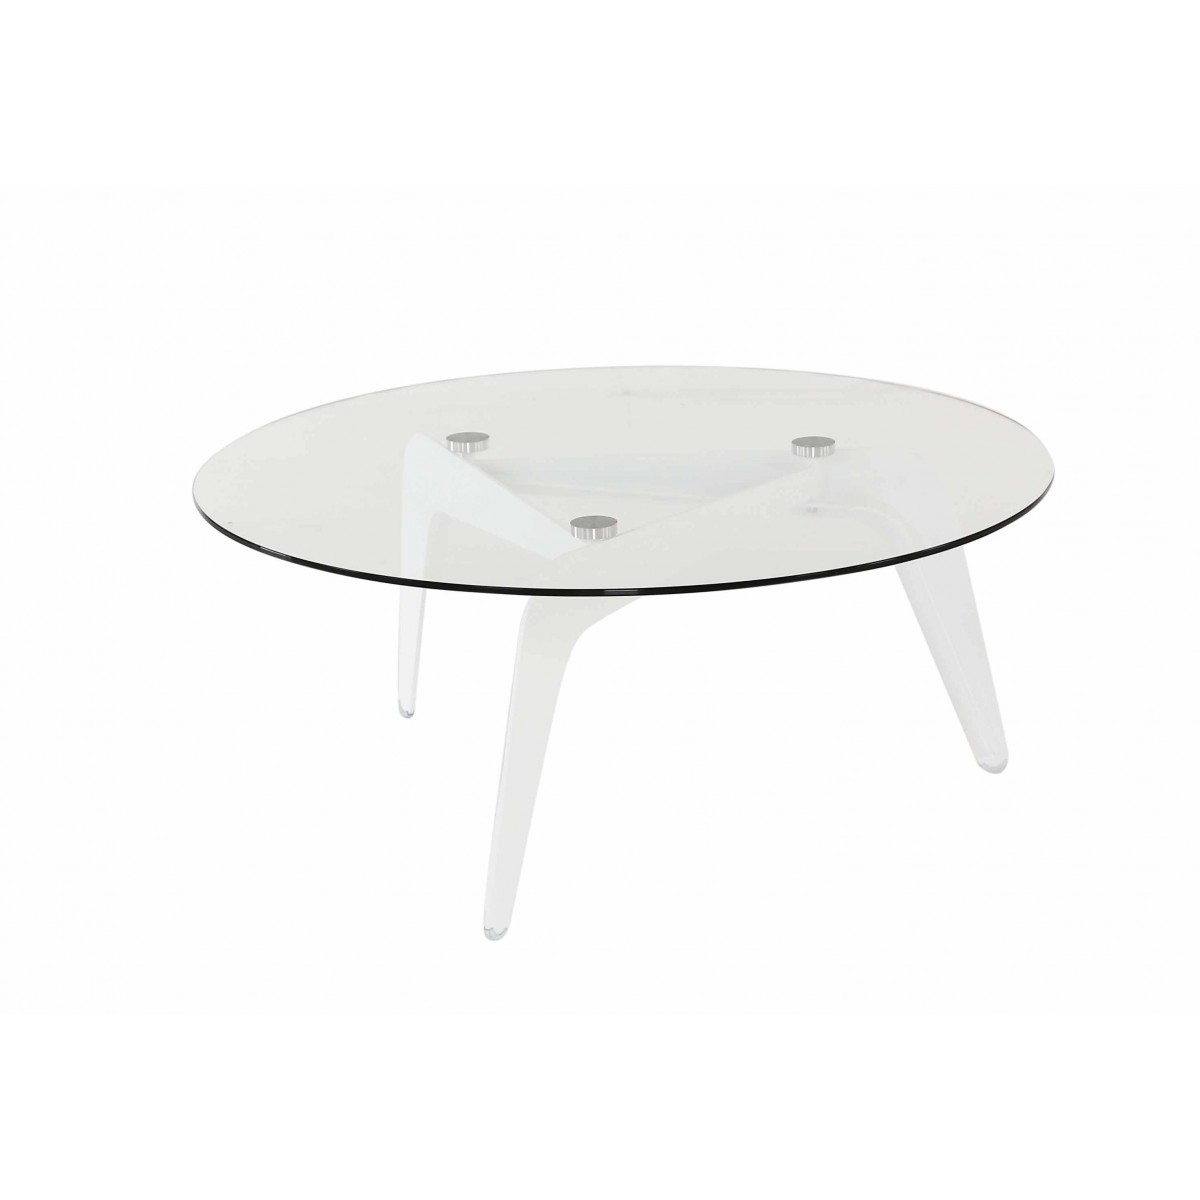 Table basse ronde verre et metal table de lit for Table basse verre metal